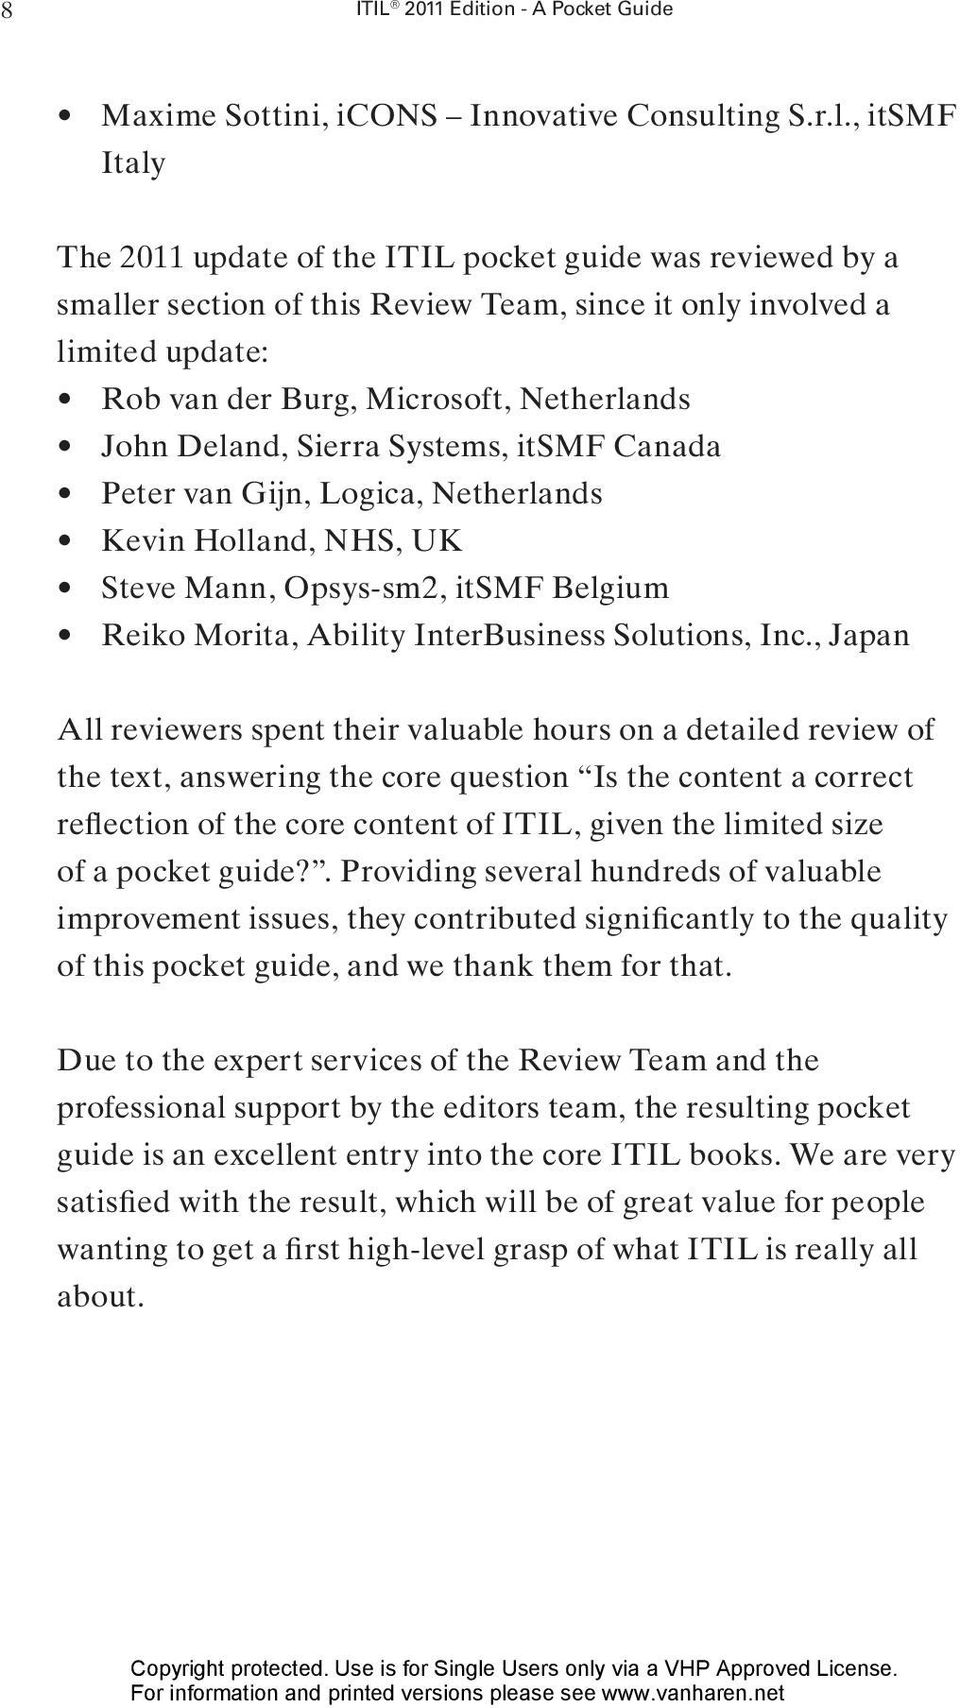 , itsmf Italy The 2011 update of the ITIL pocket guide was reviewed by a smaller section of this Review Team, since it only involved a limited update: Rob van der Burg, Microsoft, Netherlands John